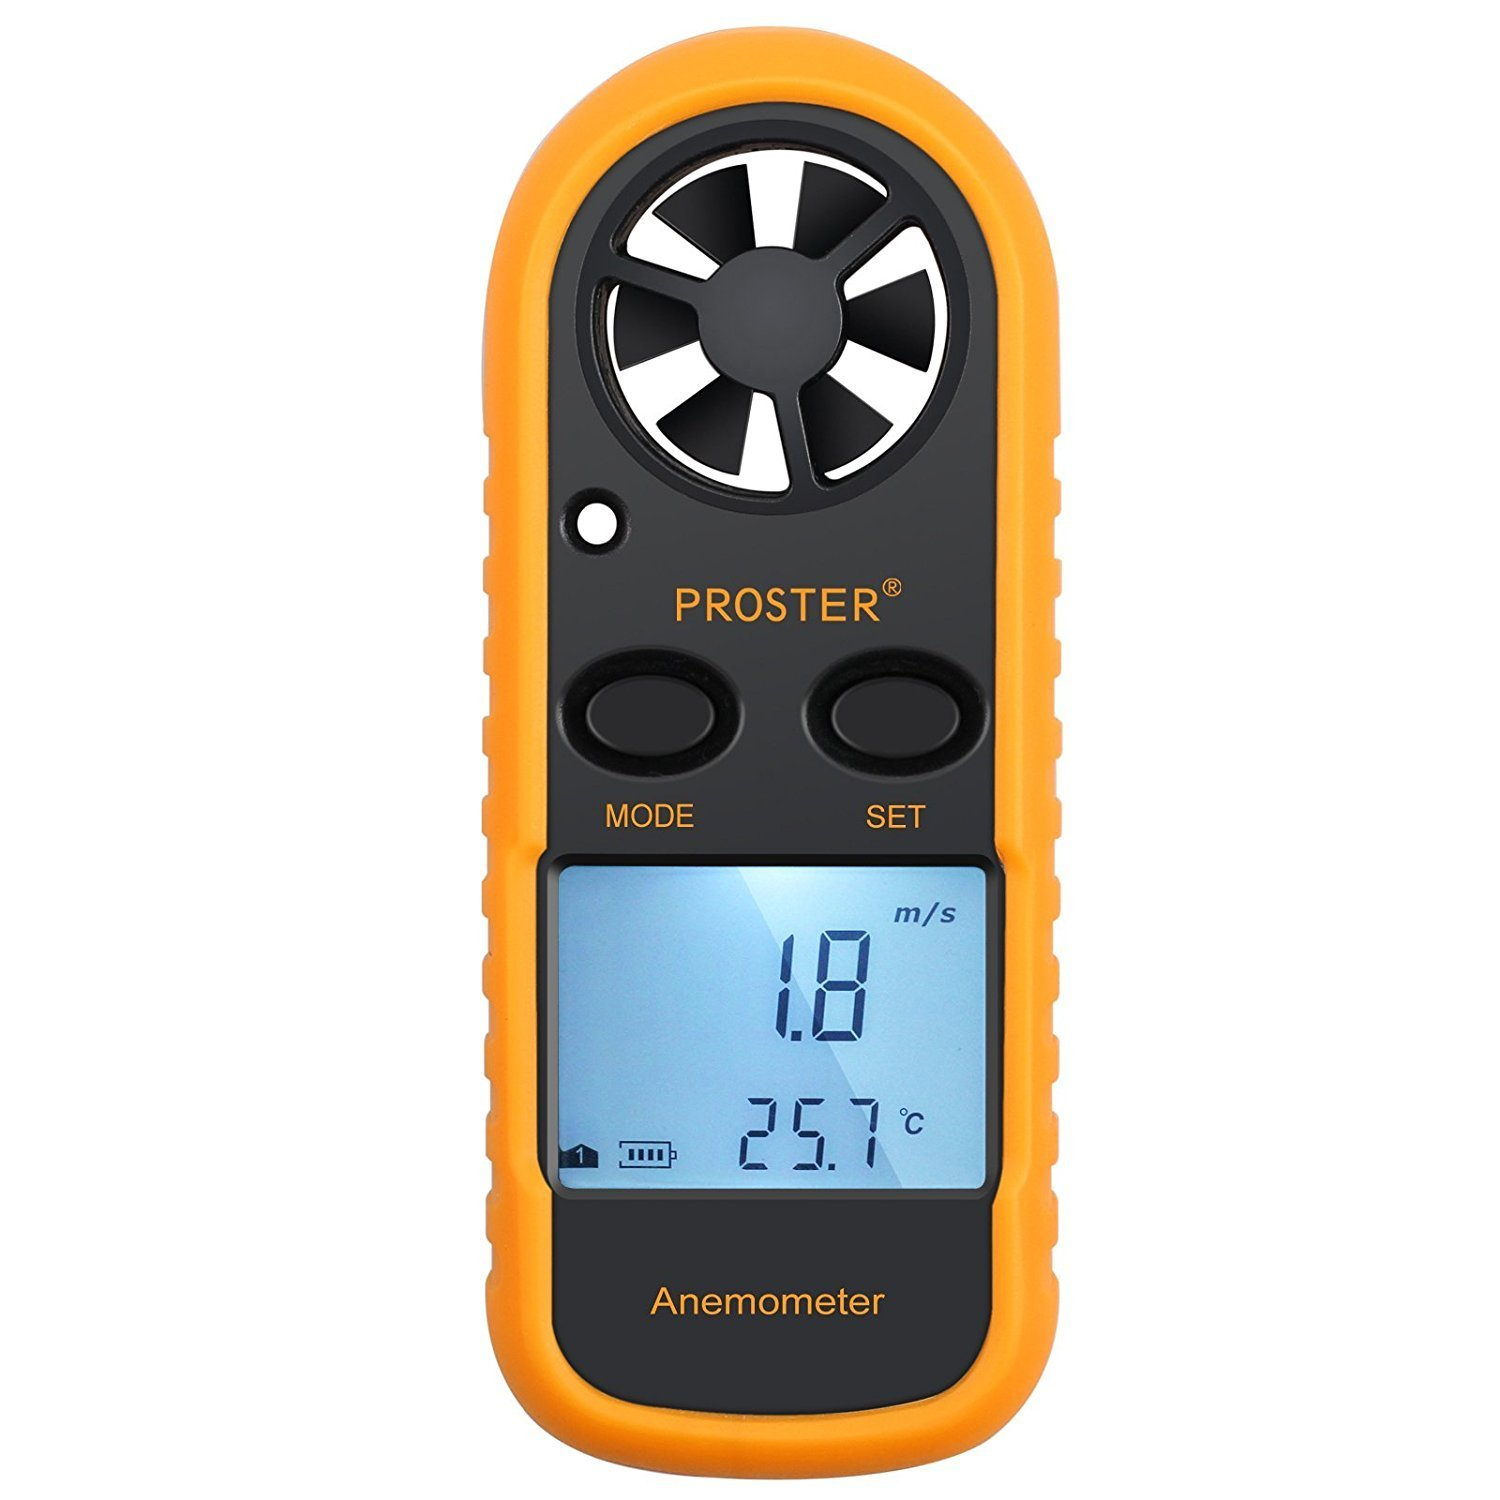 Proster Handheld Wind Speed Meter